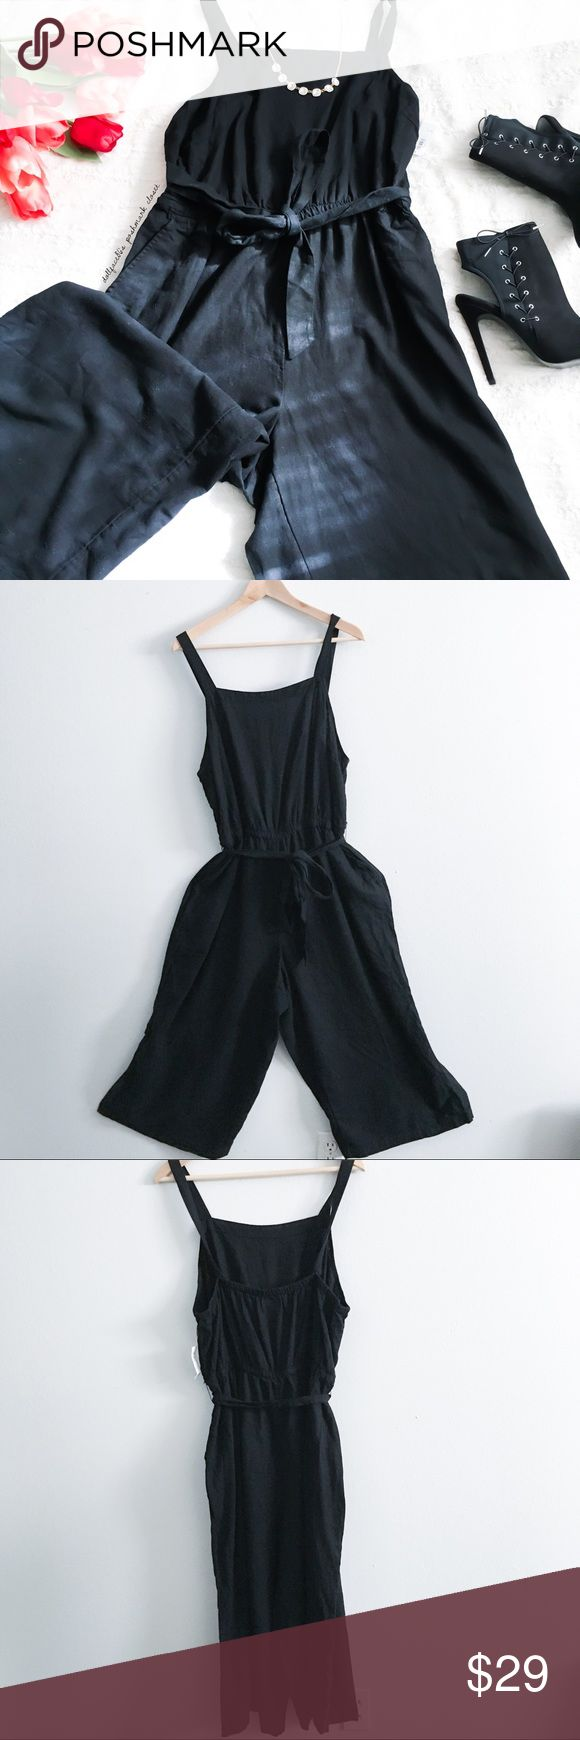 """NWT Black Pinafore Cropped Jumpsuit ✦   ✦{I am not a professional photographer, actual color of item may vary ➾slightly from pics}  ❥chest:20"""" ❥waist:17"""" w/stretch ❥length:44.5""""chest-hemline ❥inseam:20.5"""" ➳55%linen+Rayon/machine wash ➳fit:looks true, but no stretch except for waist band, plz use measurements ➳condition:new w/tag part of tag w/price bent off (sorry)  ✦20% off bundles of 3/more items ✦No Trades  ✦NO HOLDS ✦No lowball offers/sales are final  ✦‼️BE A RESPONSIBLE BUYER PLS ASK…"""